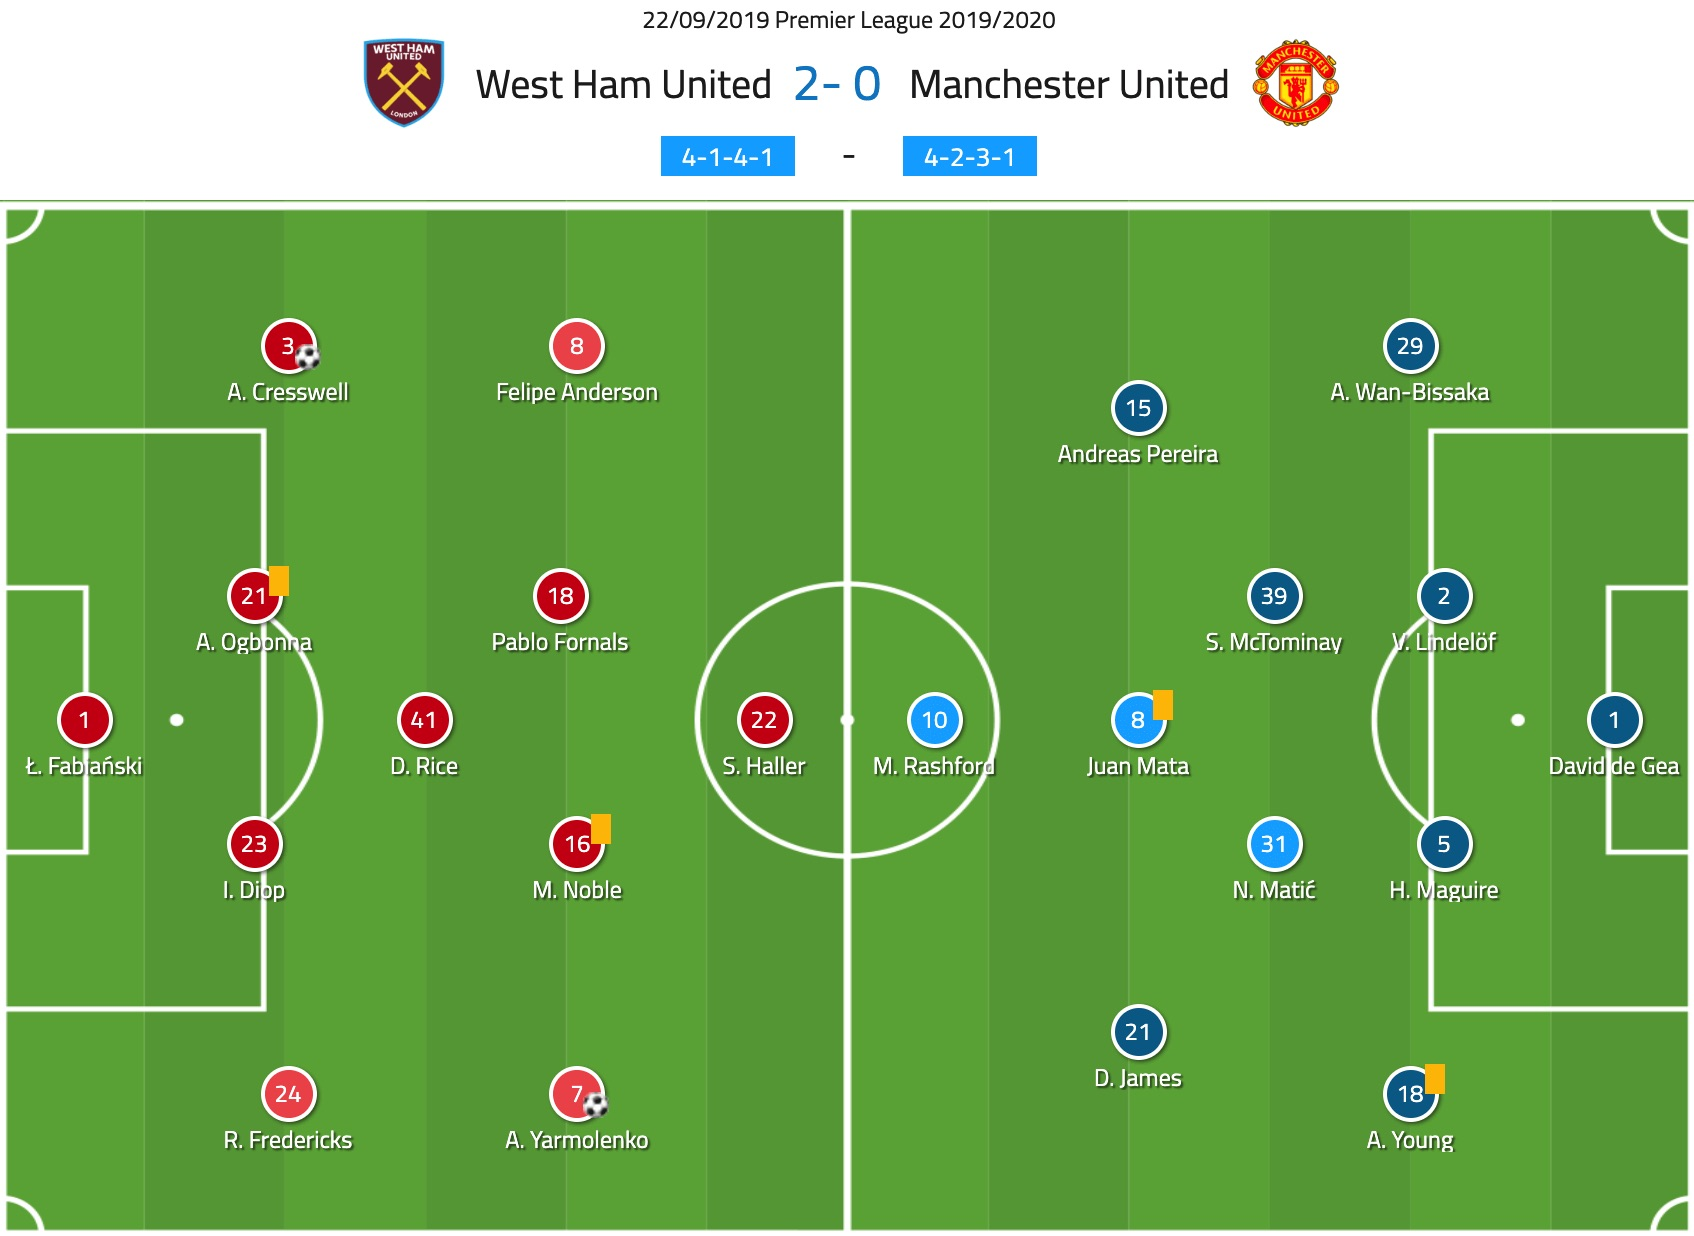 Premier League 2019/20: West Ham vs Man United - tactical analysis tactics